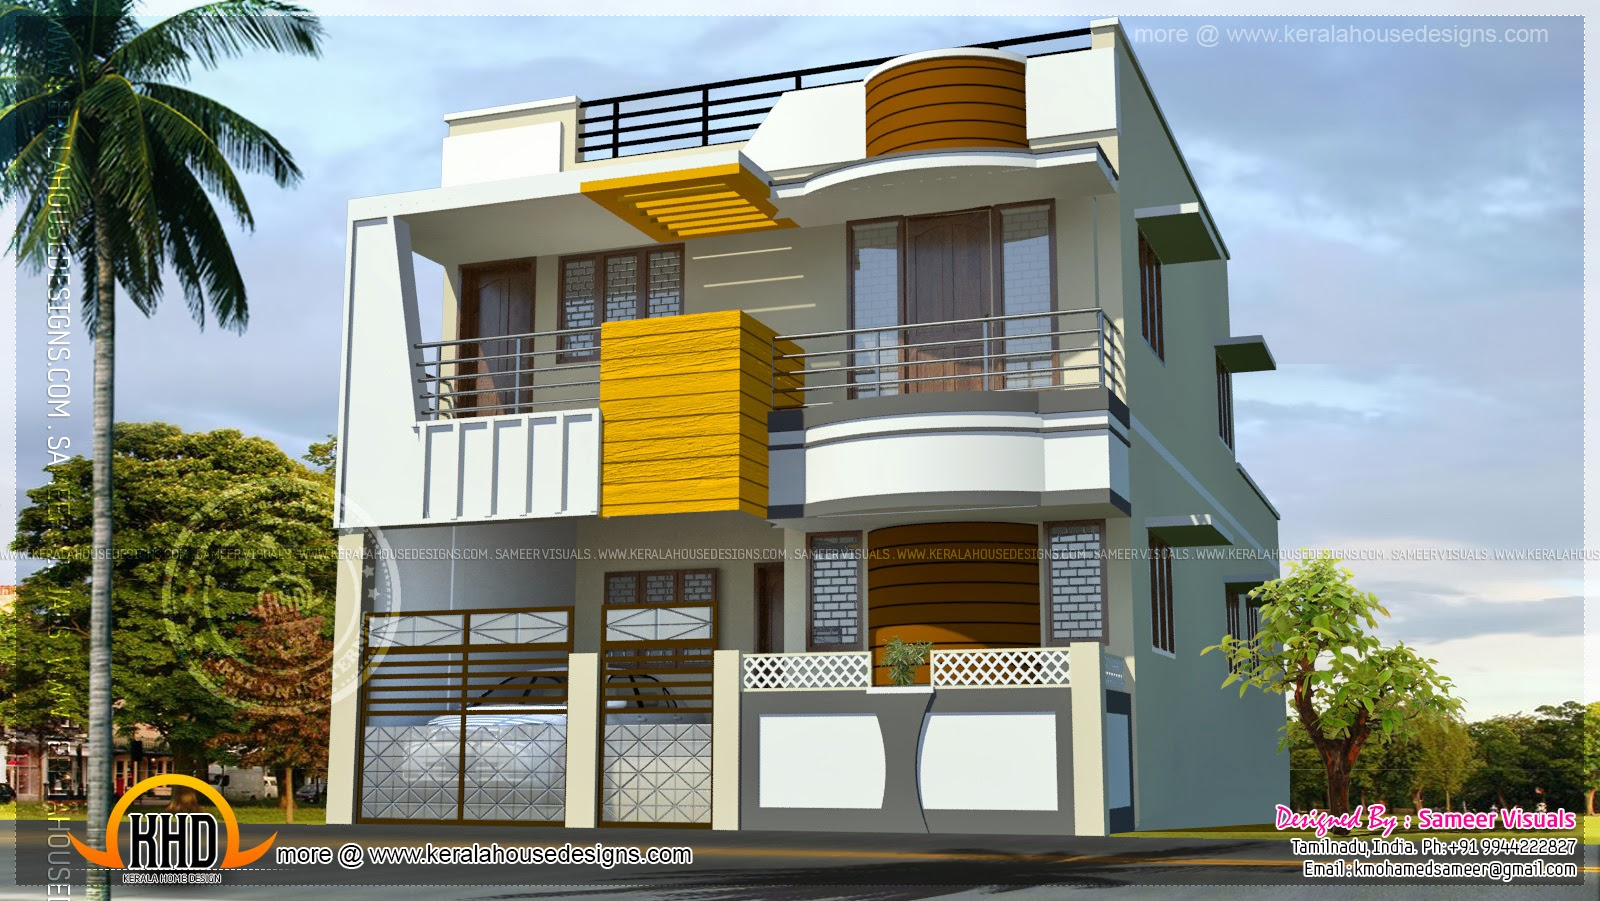 Double storied modern south indian home kerala home for Home front design in indian style